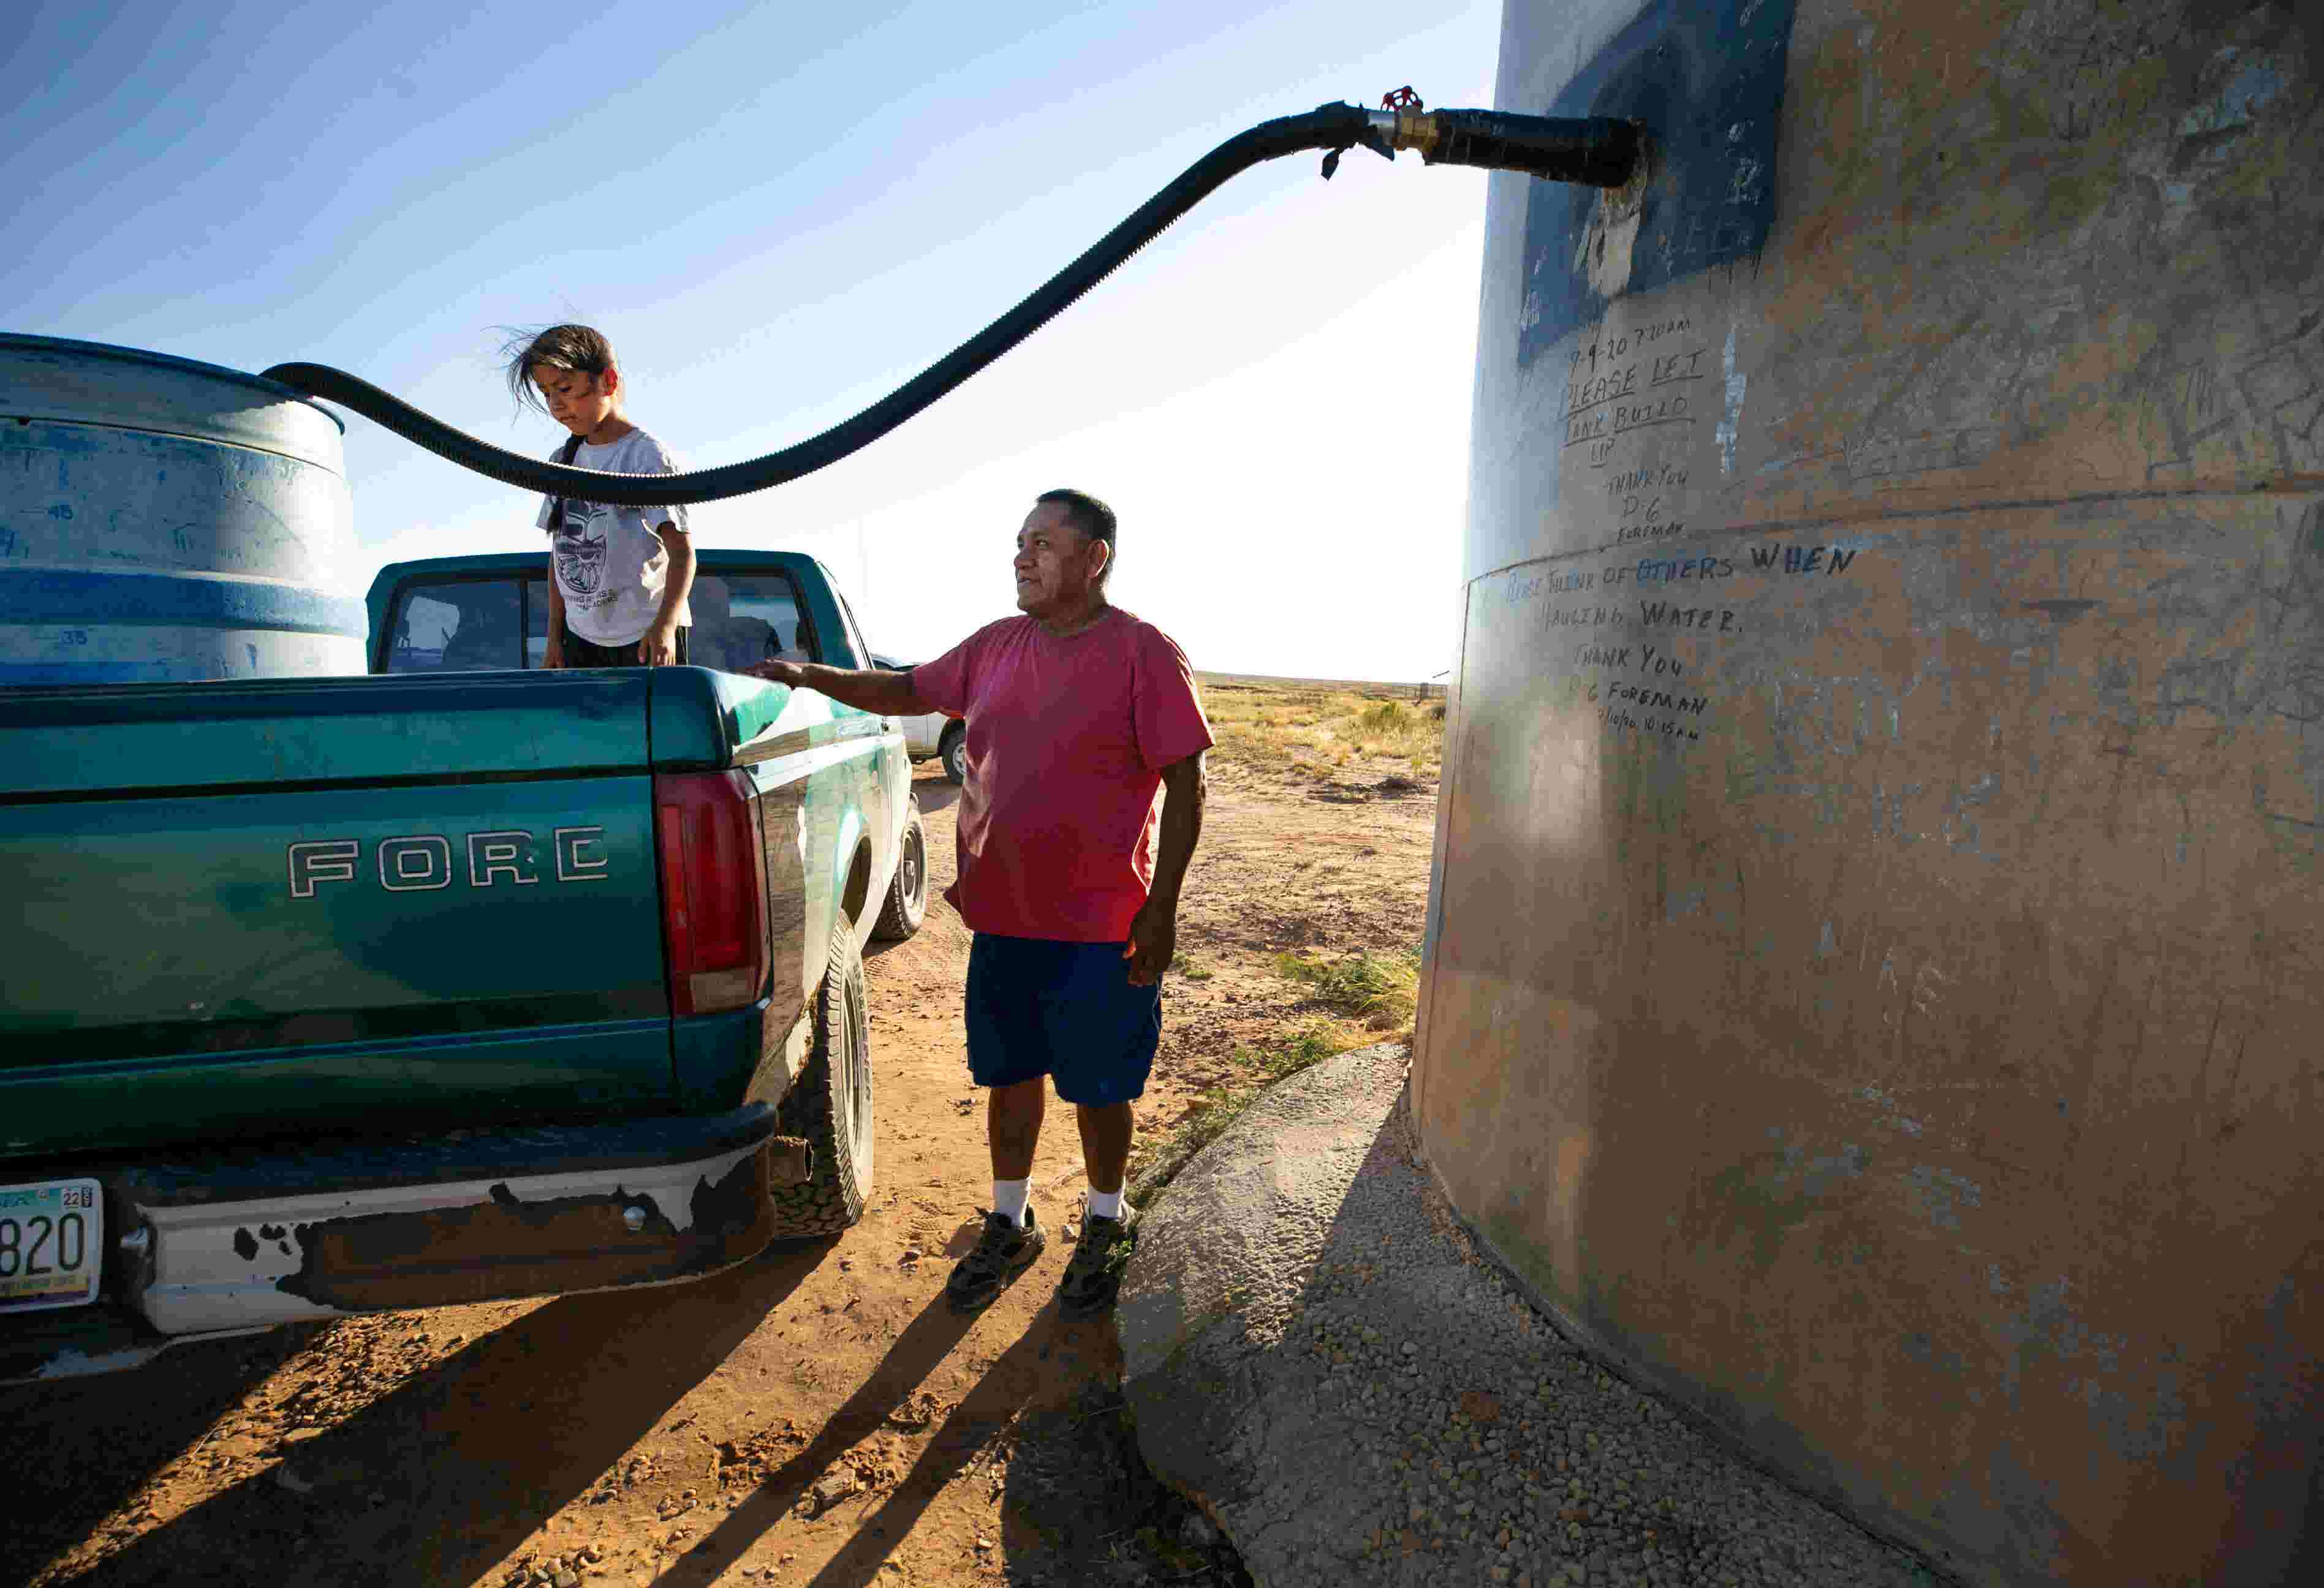 ""\"""" water is life."""" infrastructure needs on hopi reservation""3793|2592|?|en|2|20281334390a0812bb091c6515d5ff80|False|UNLIKELY|0.2973919212818146